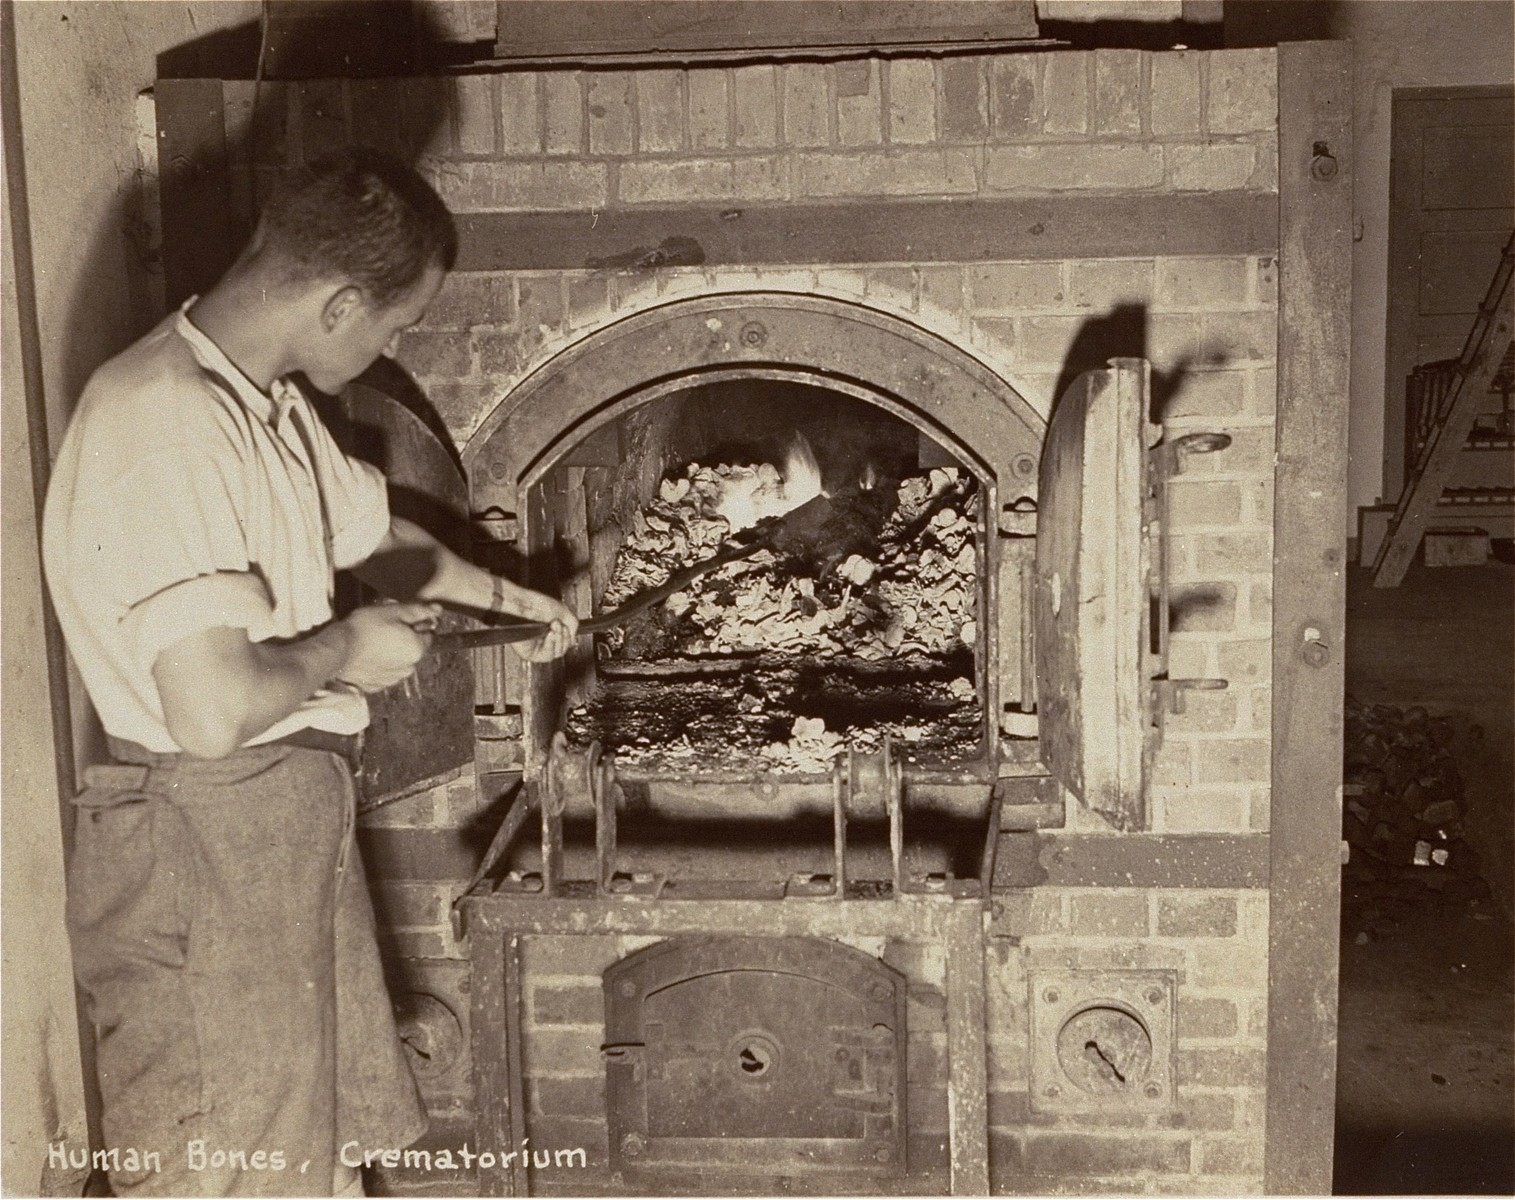 A survivor stokes smoldering human remains in a crematorium oven that is still lit.